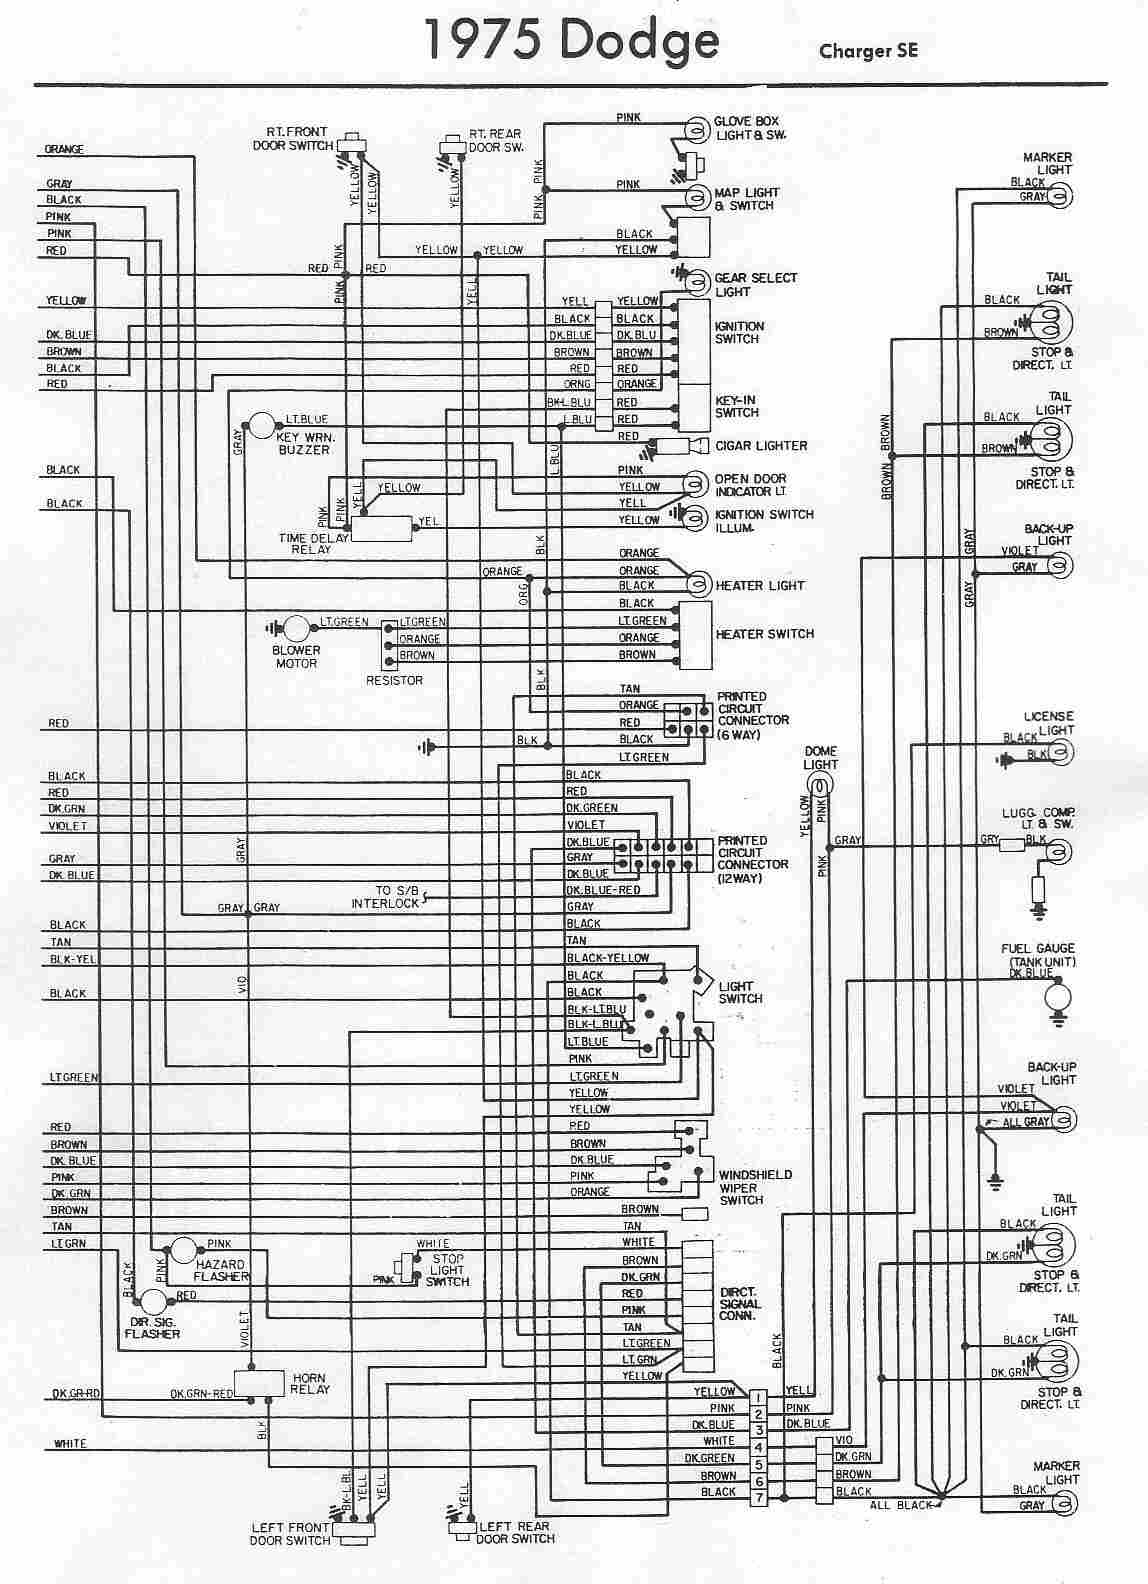 1987 Dodge Daytona Wiring Diagram Schematics Diagrams 1982 Supra Electrical Pdf Engine 1973 Amc Gremlin